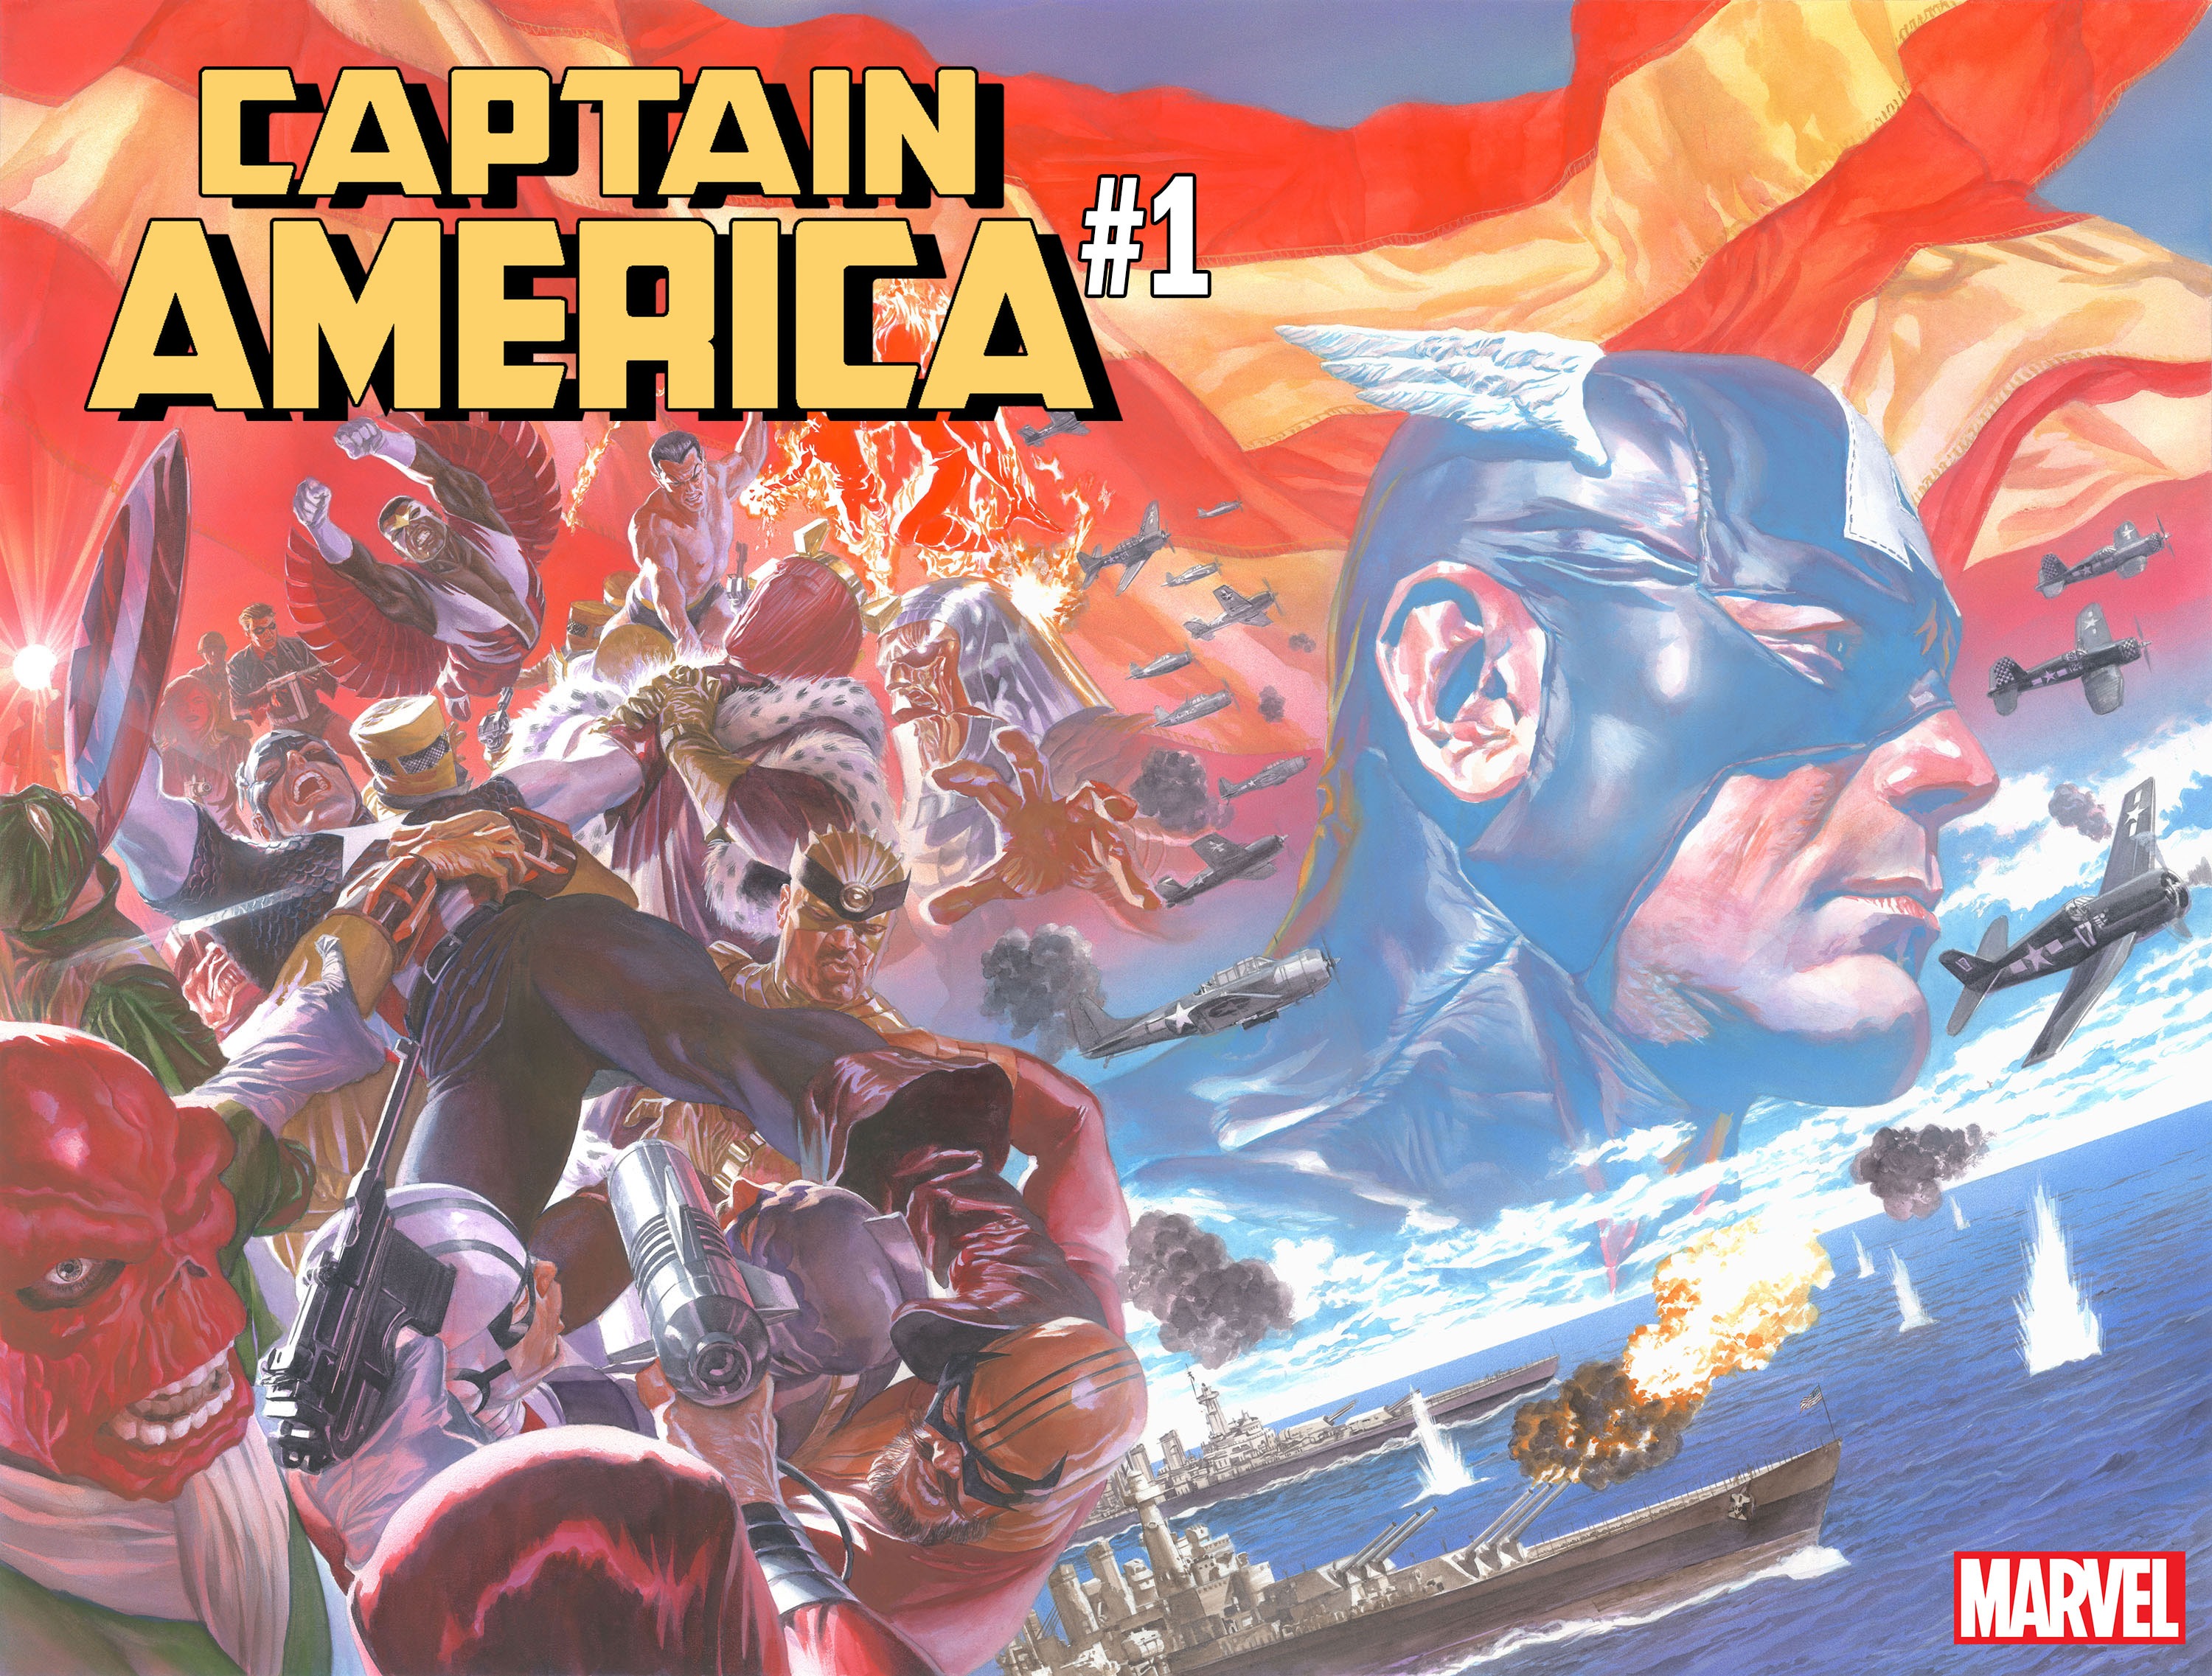 New Captain America Story Coming On Free Comic Book Day Free Comic